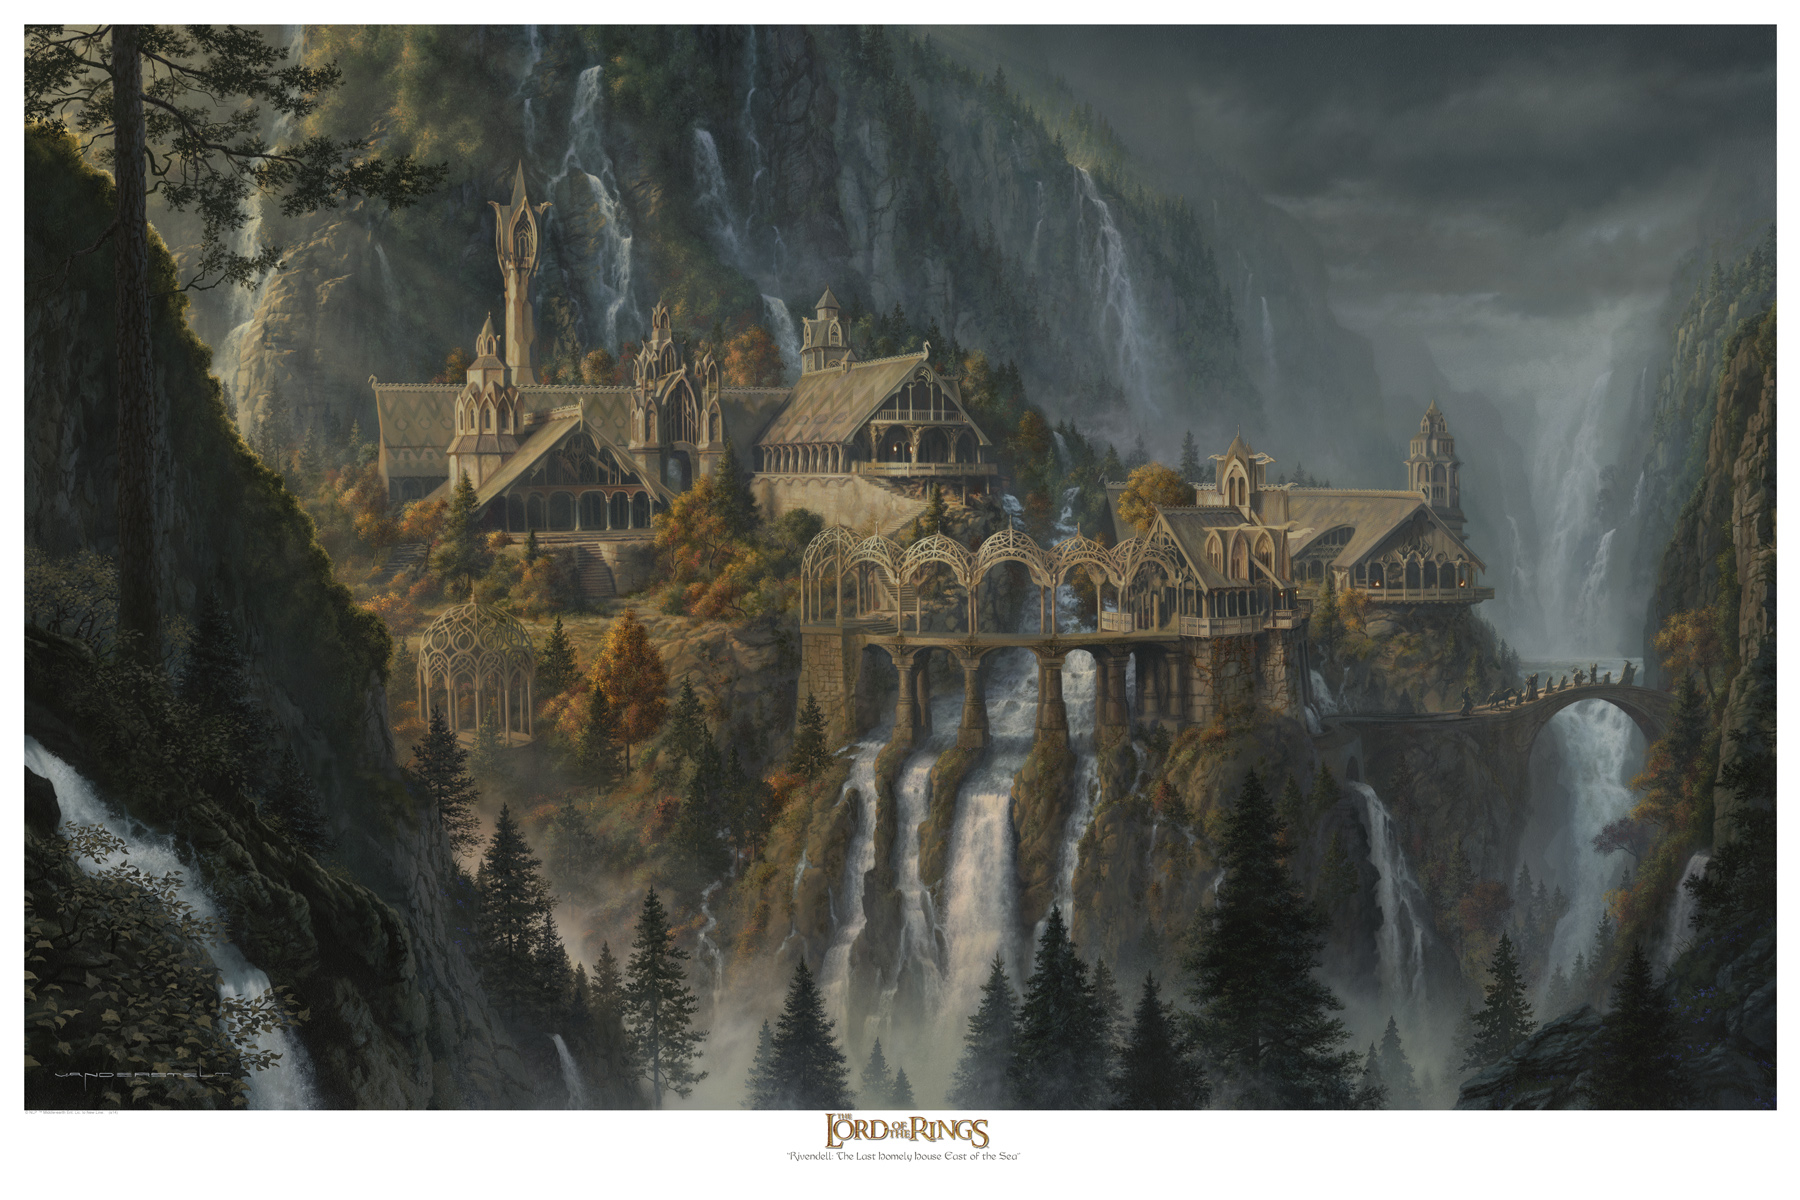 Collecting The Precious Vanderstelt Studio Rivendell Art Print